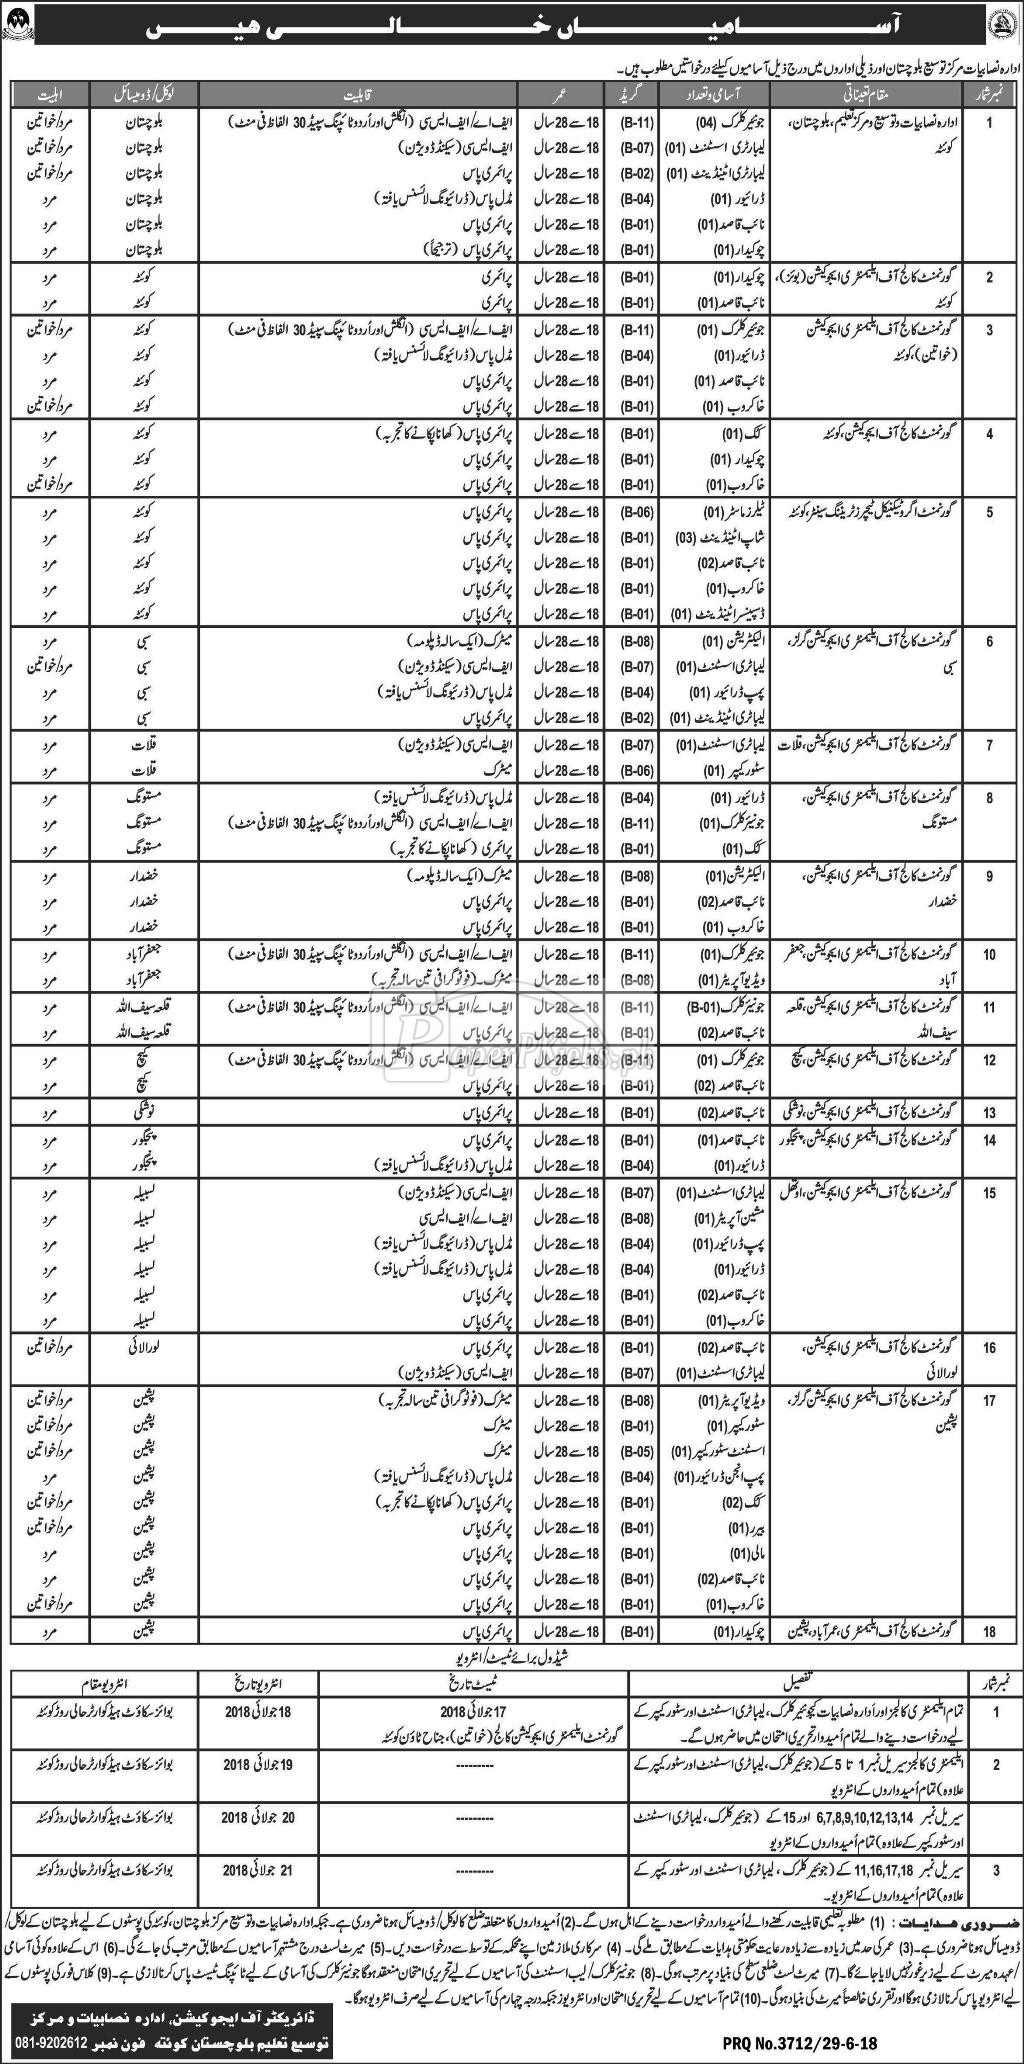 Balochistan Education Department Jobs 2018